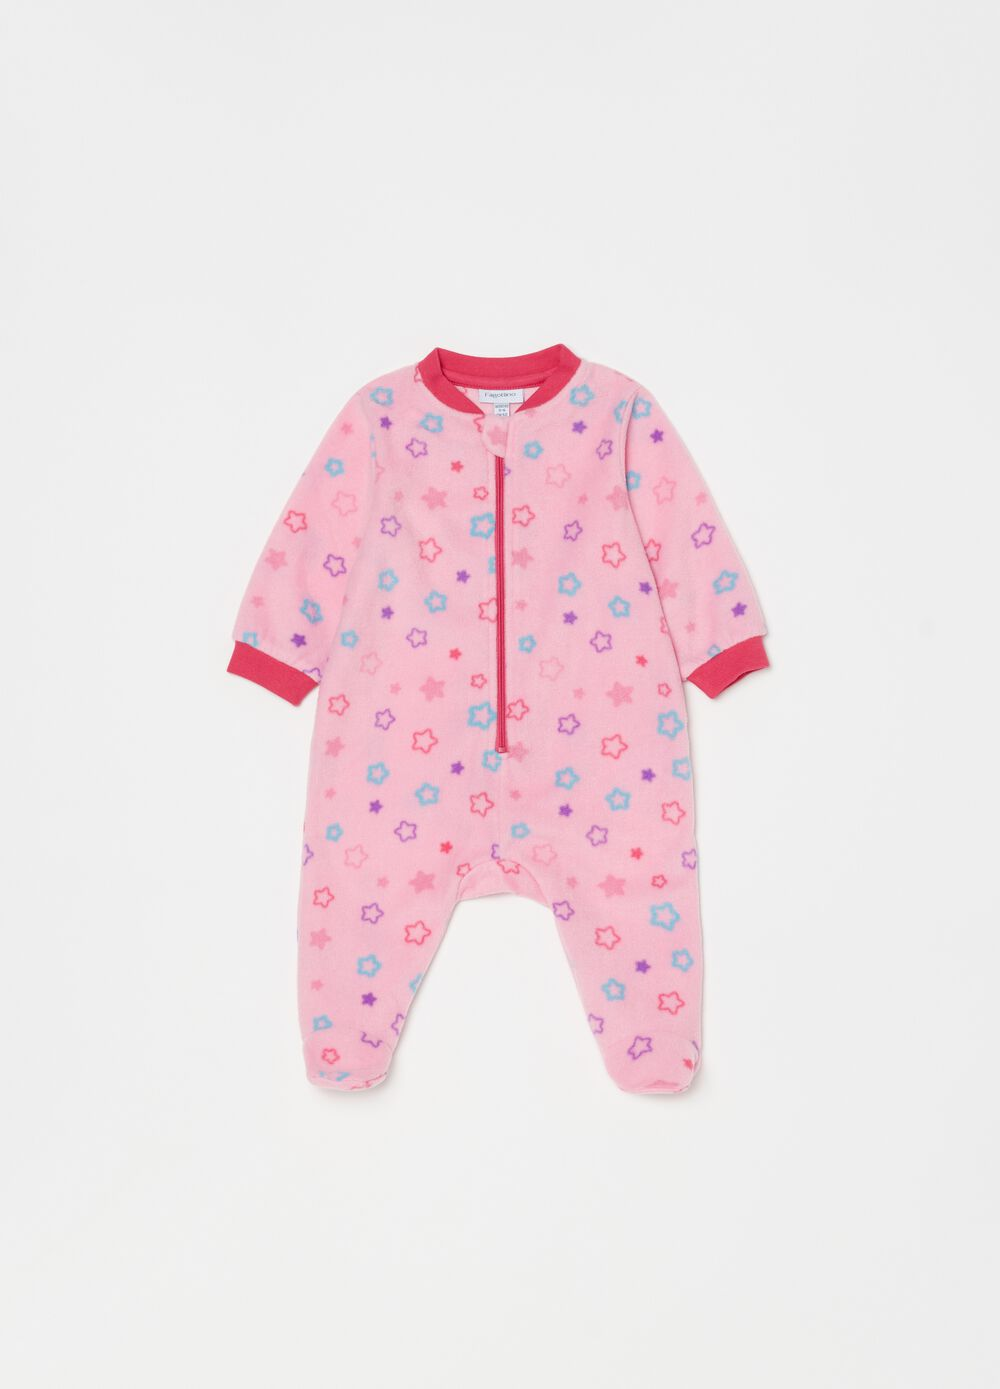 Onesie with feet and small stars pattern